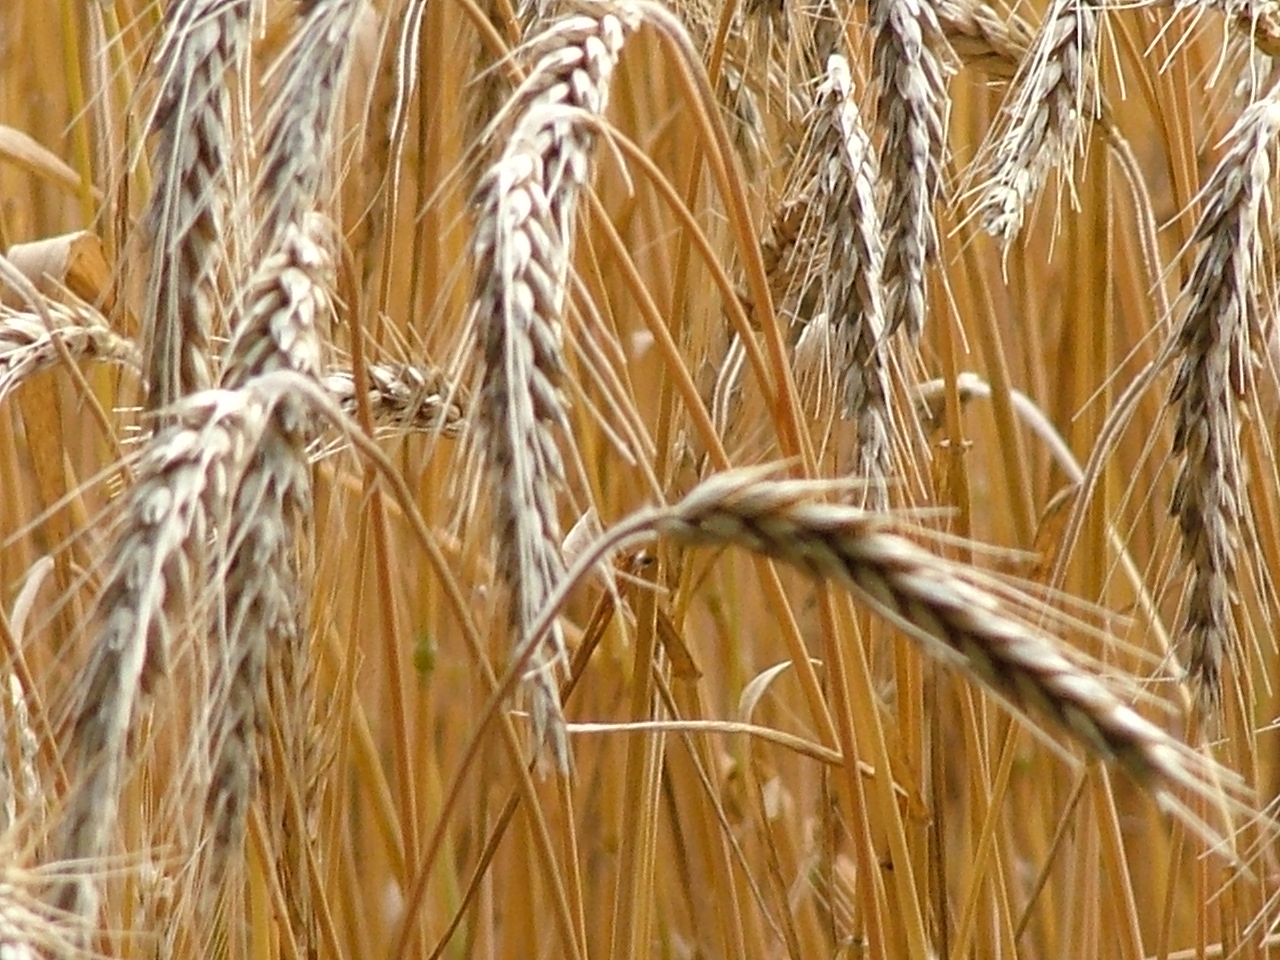 Scientists conduct research to determine impact of heat on wheat